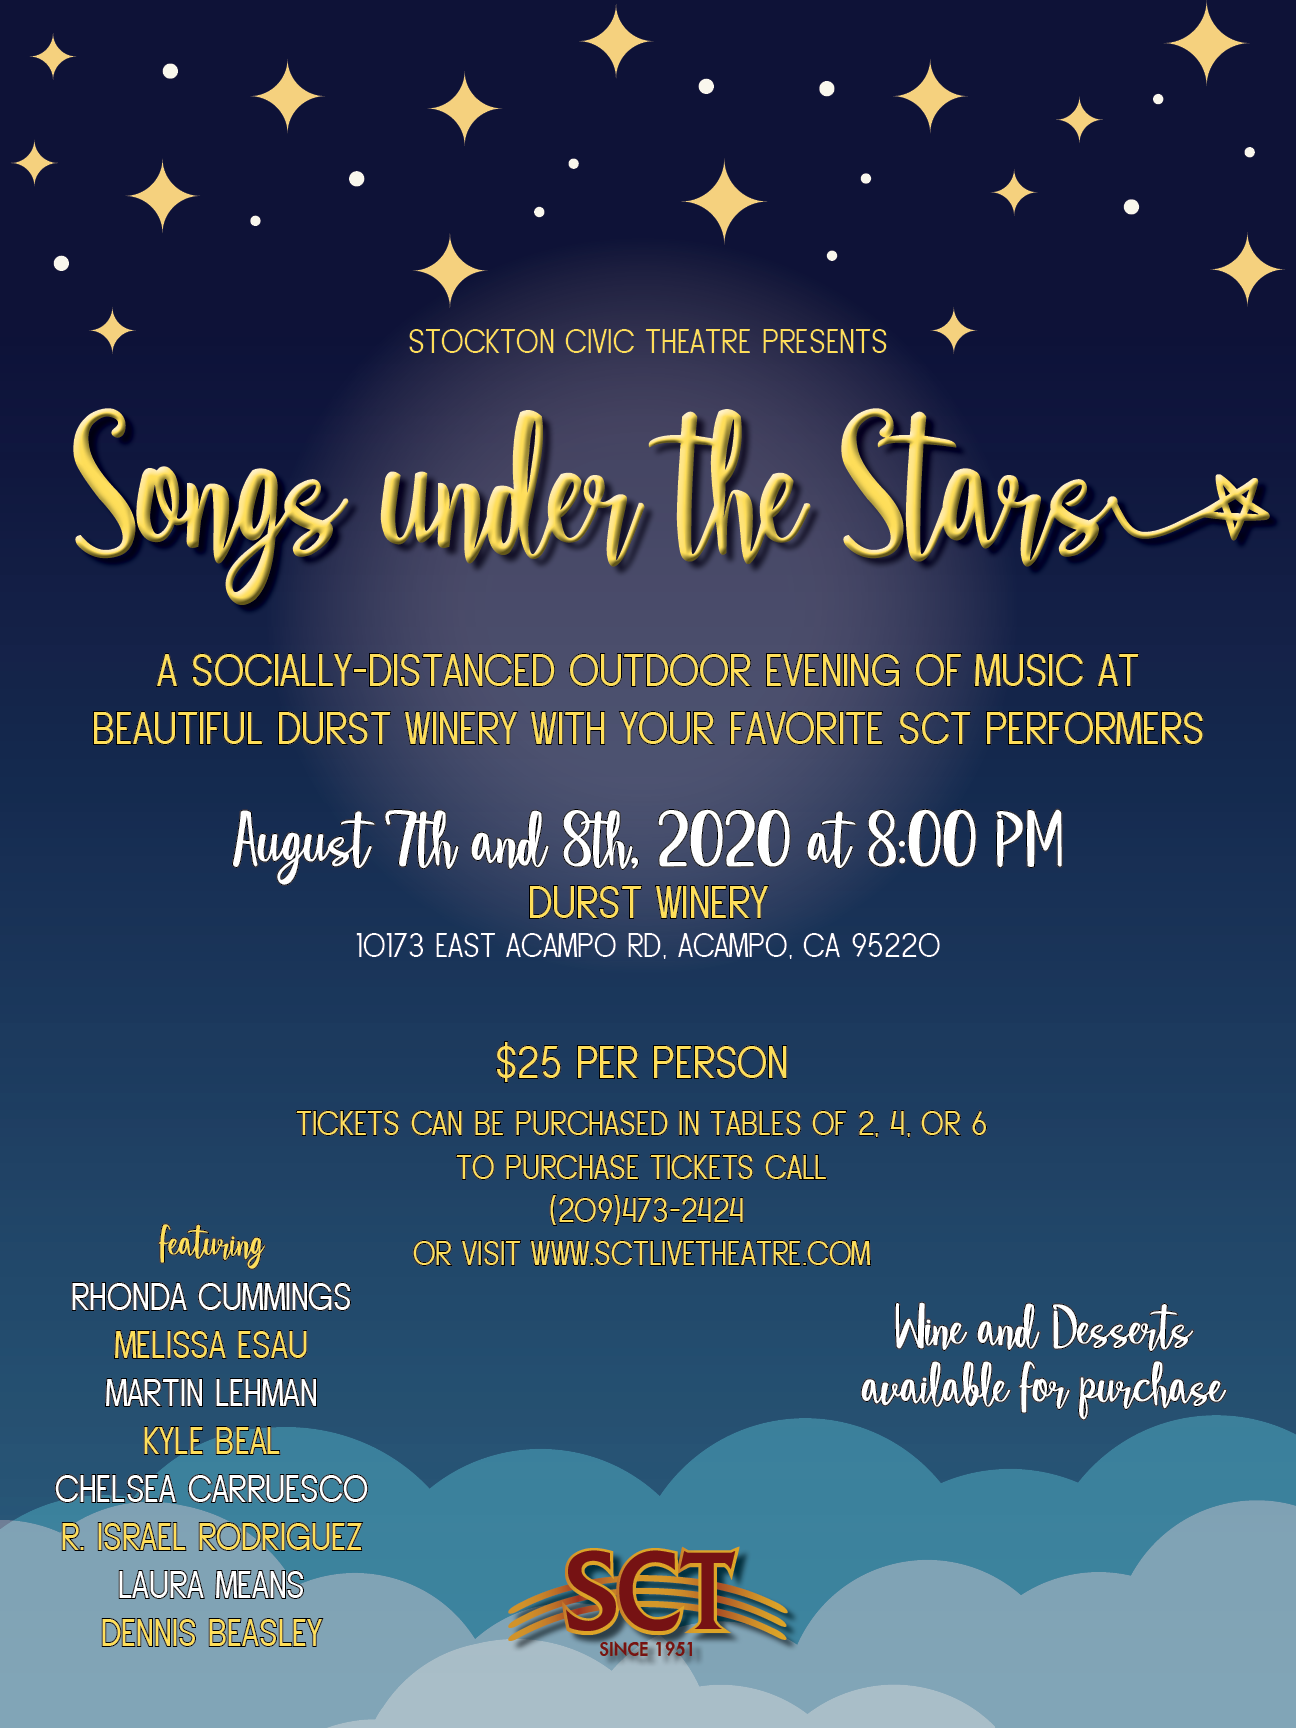 Songs Under the Stars at Durst Winery